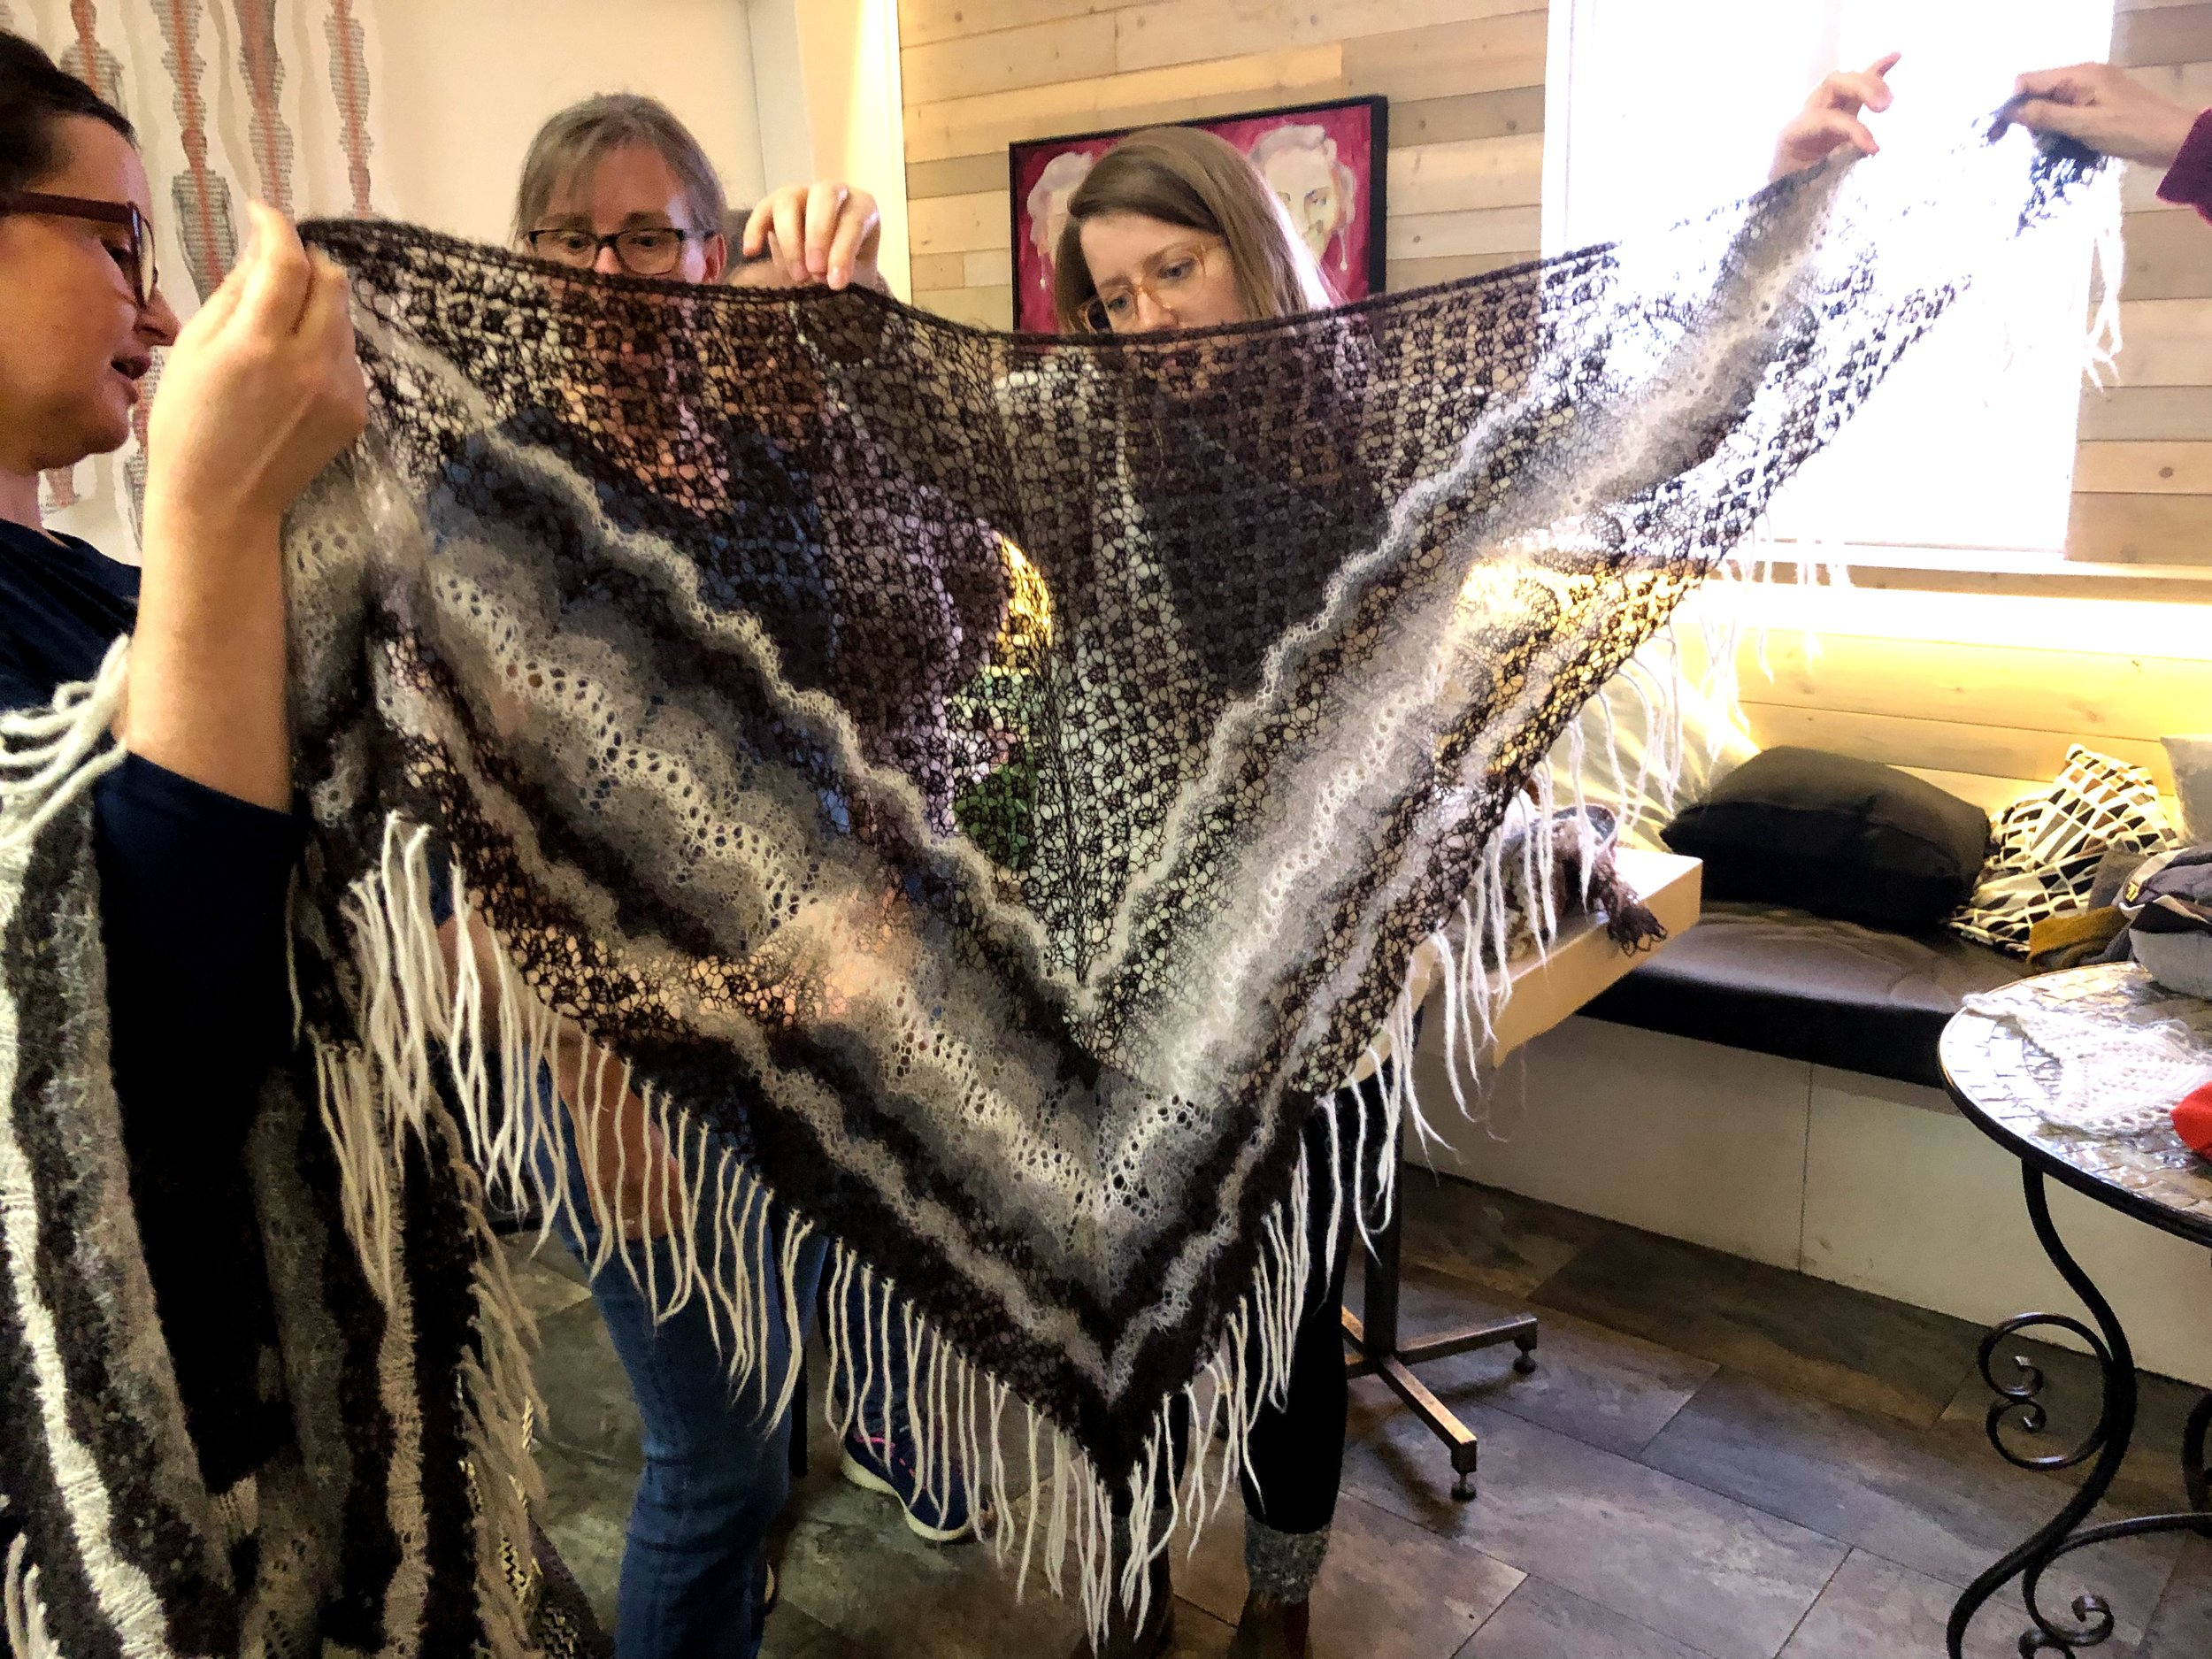 A traditional Icelandic triangle shawl featuring spider lace and undulating lace patterns (thank you Brigitte!)